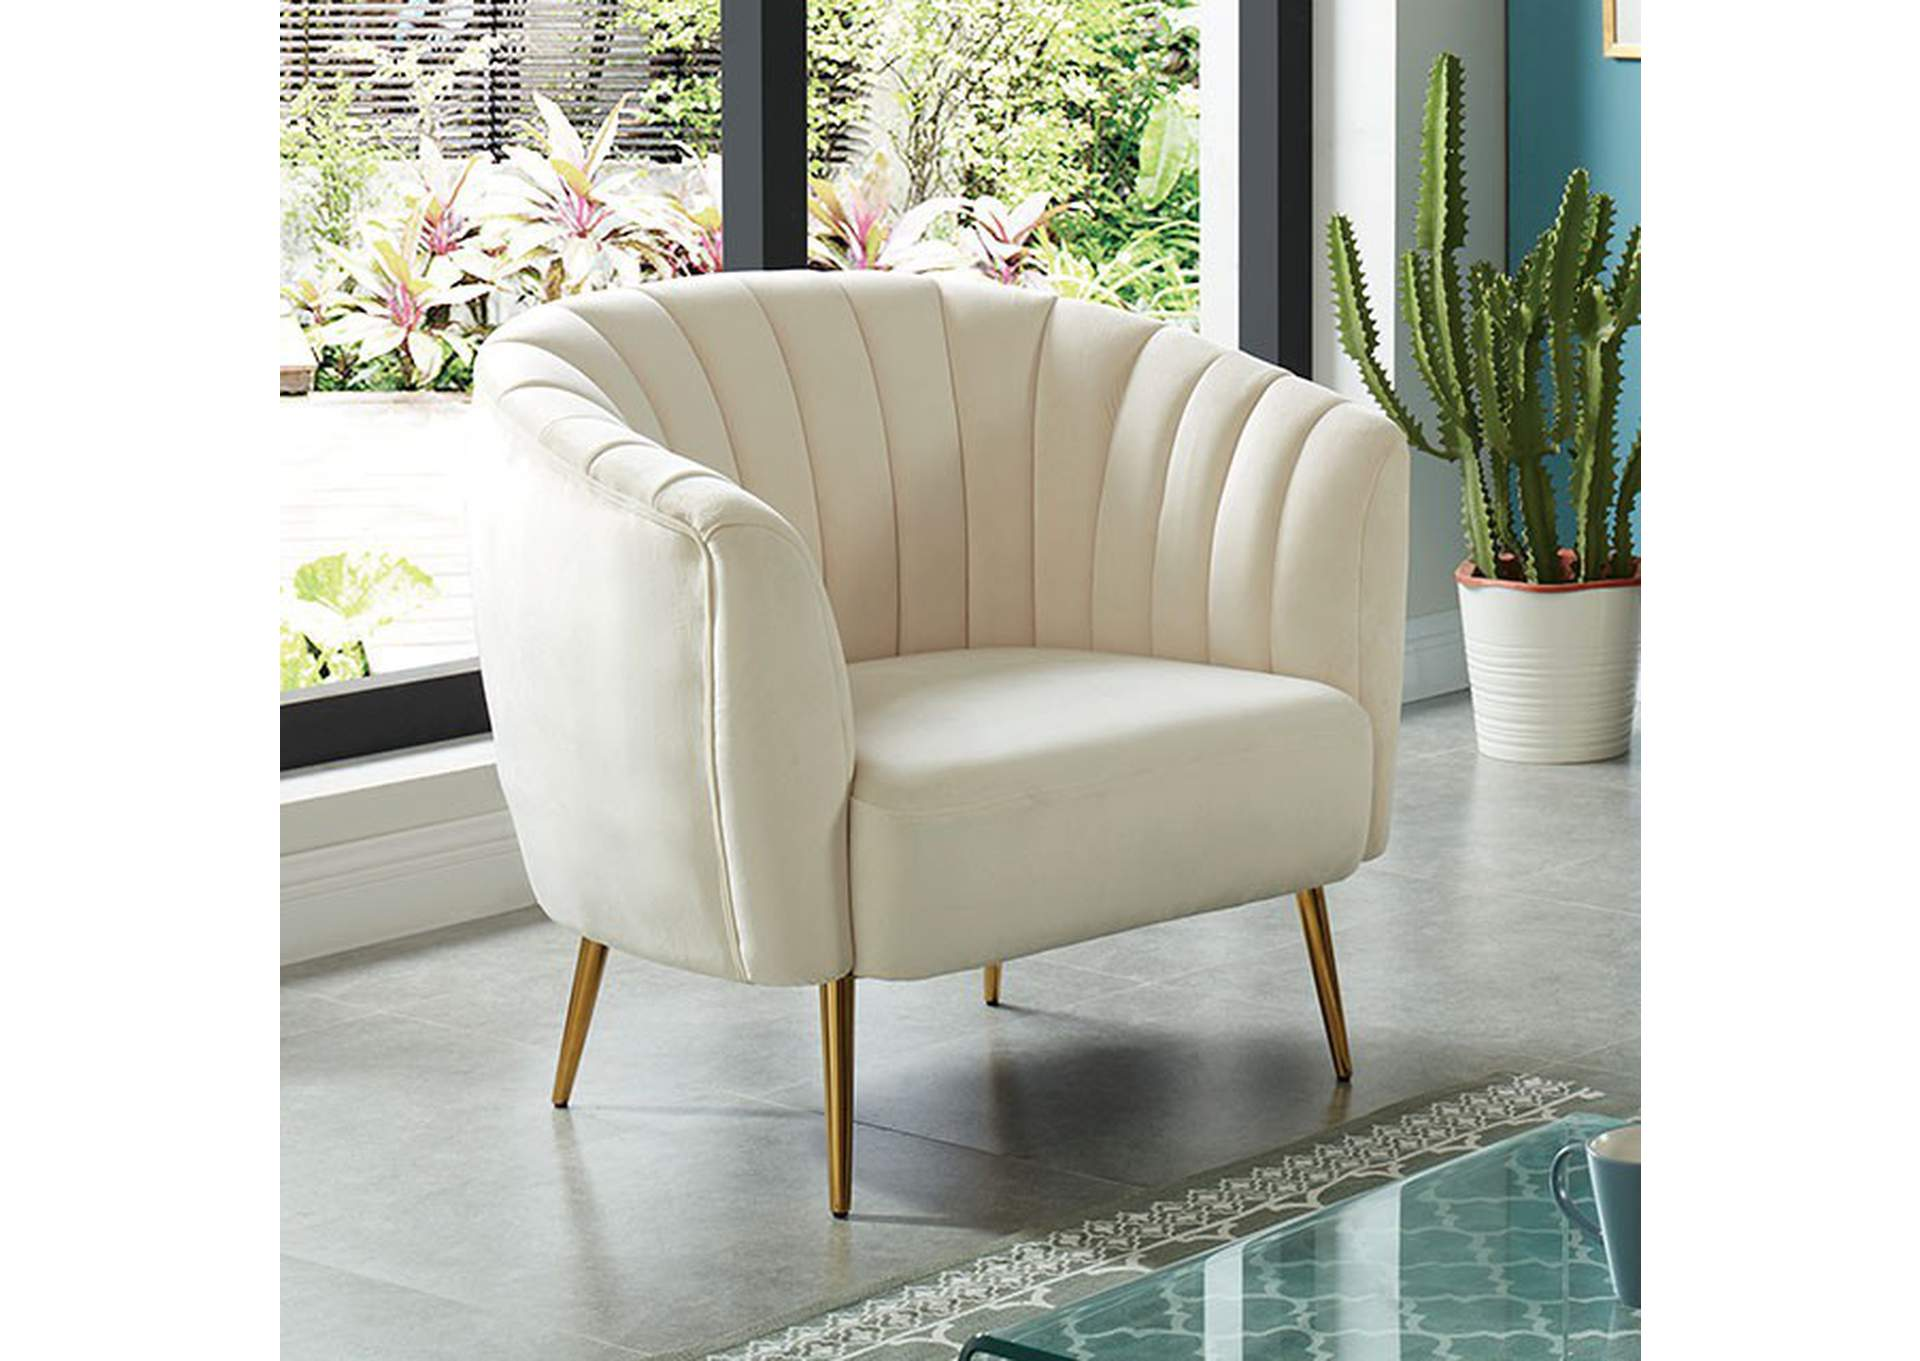 Dionne Ivory Chair,Furniture of America